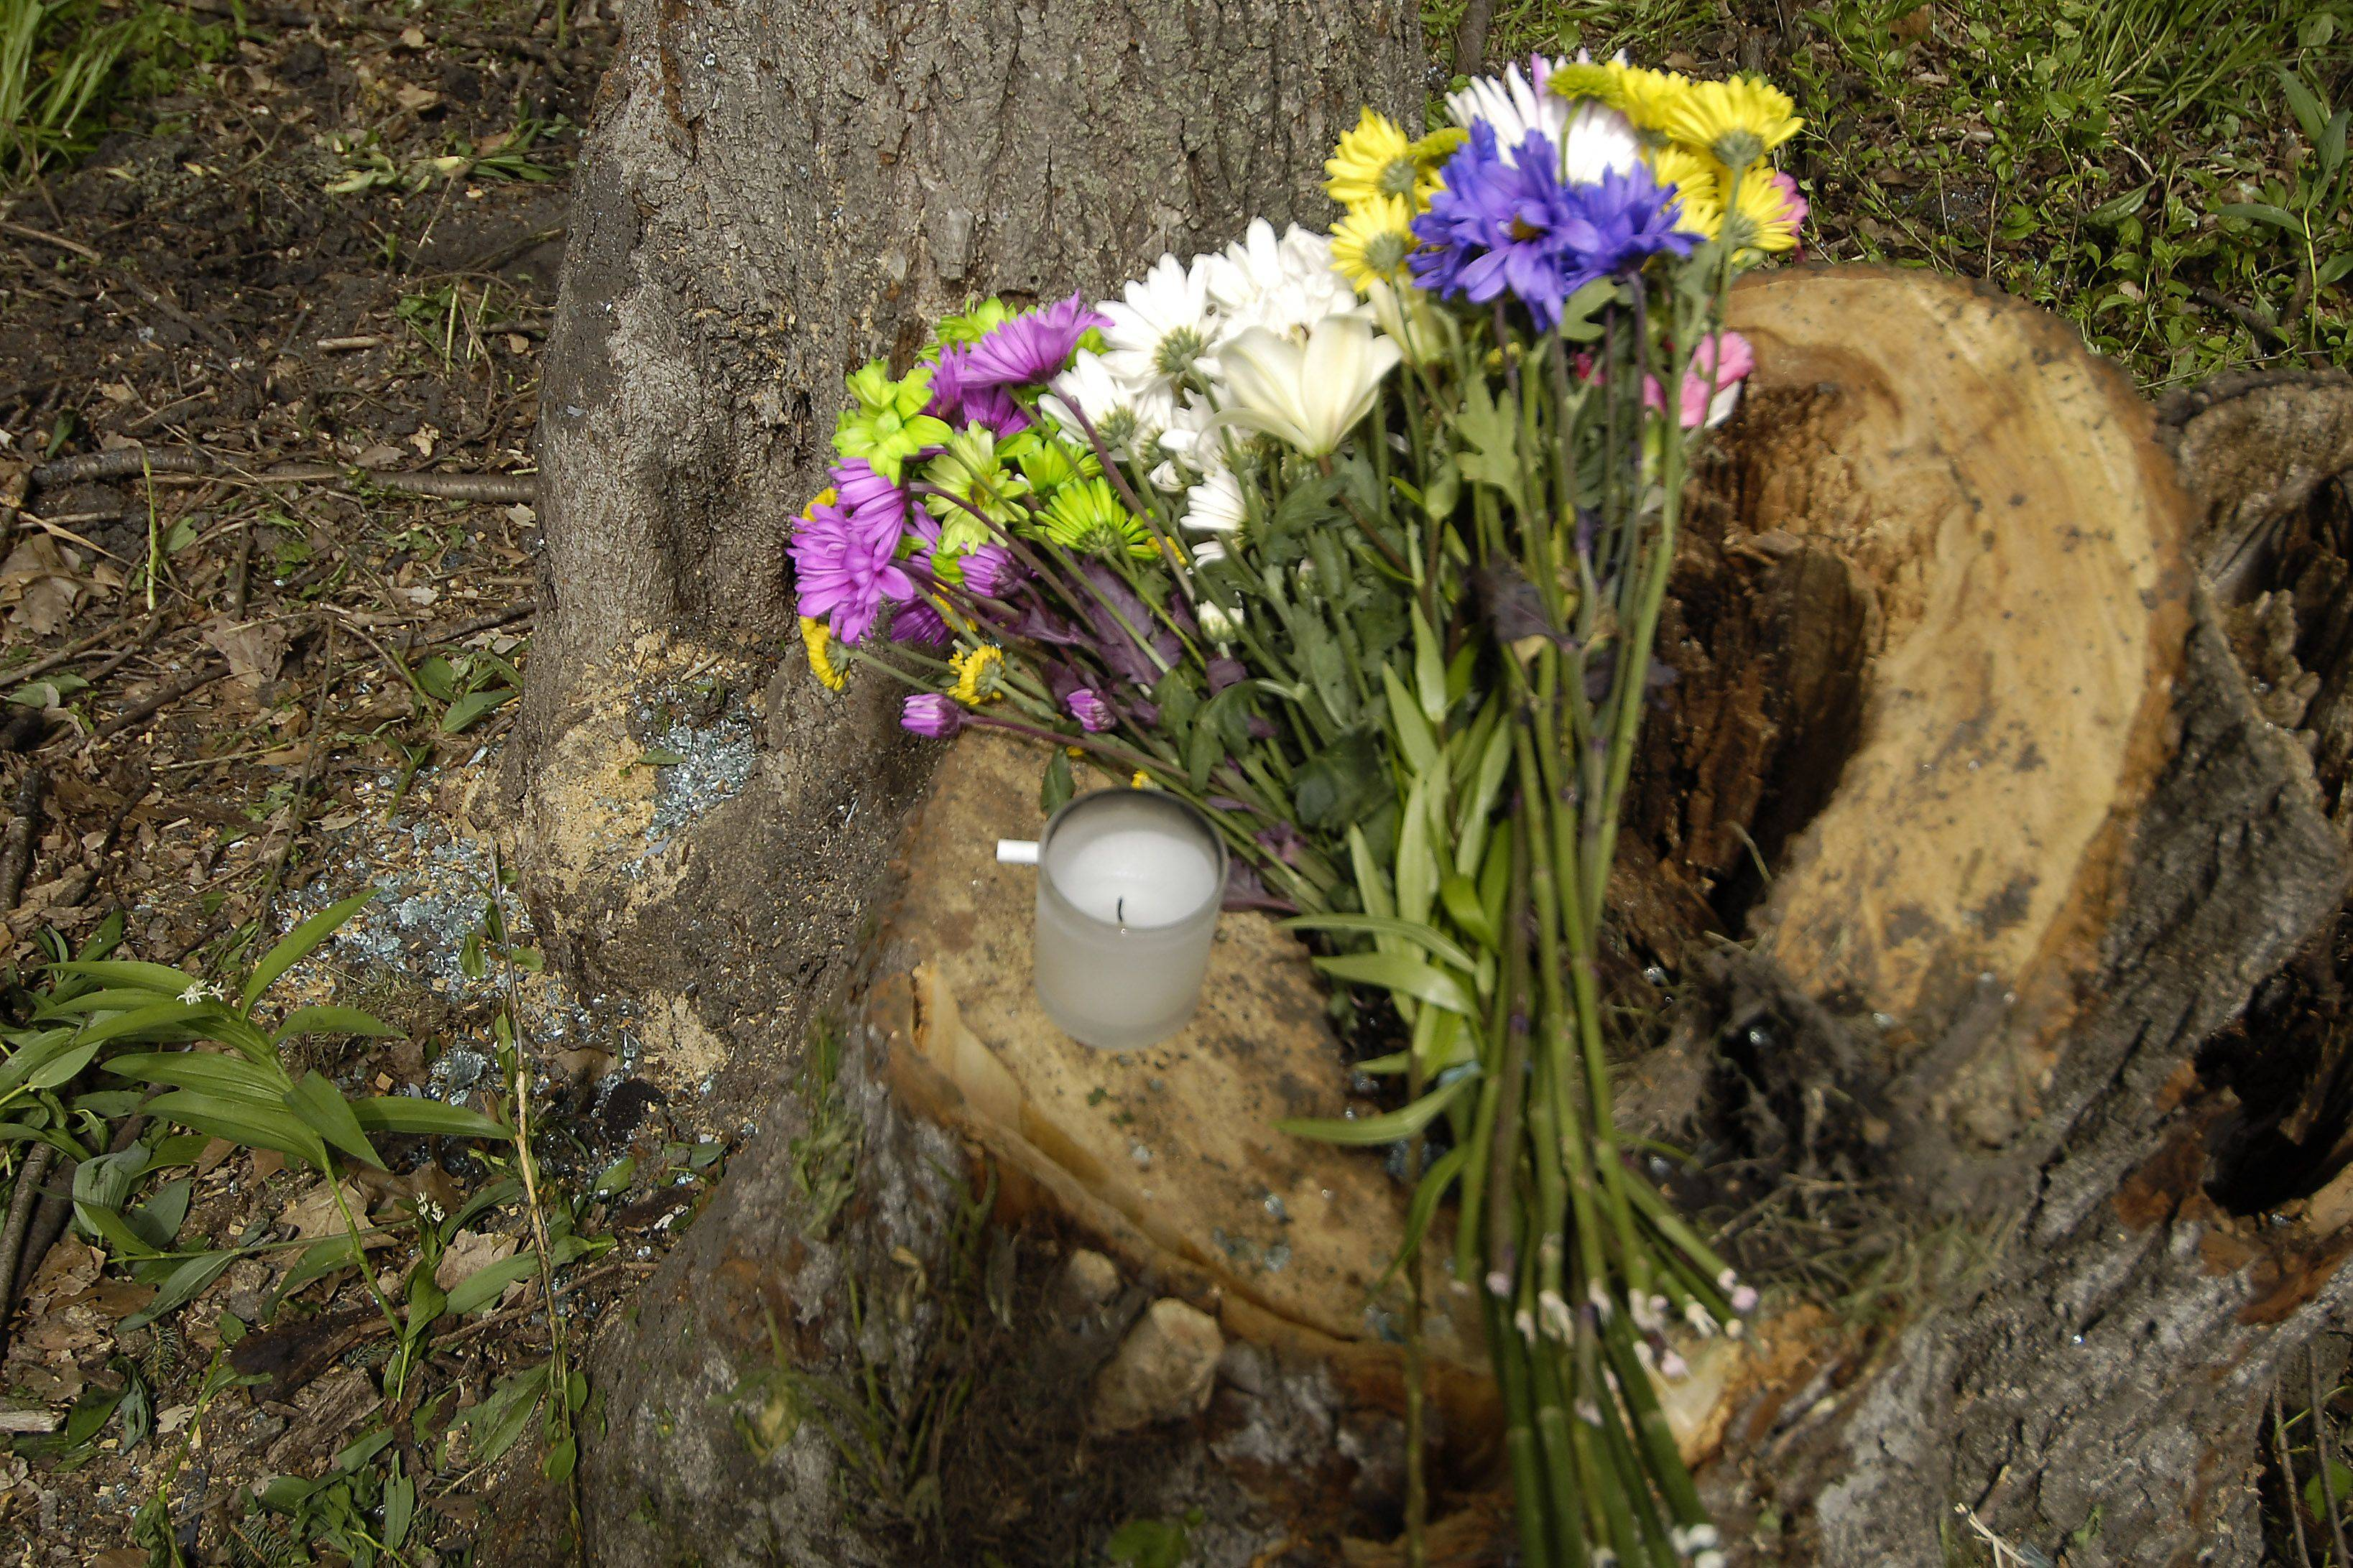 Flowers, a candle and broken glass mark the site of Monday's fatal accident on Green Road in Elburn that took the life of Batavia High School senior Lynlee Gilbert, 17. Passenger Sarah Ginter, 18, is in critical condition at Delnor Hospital.